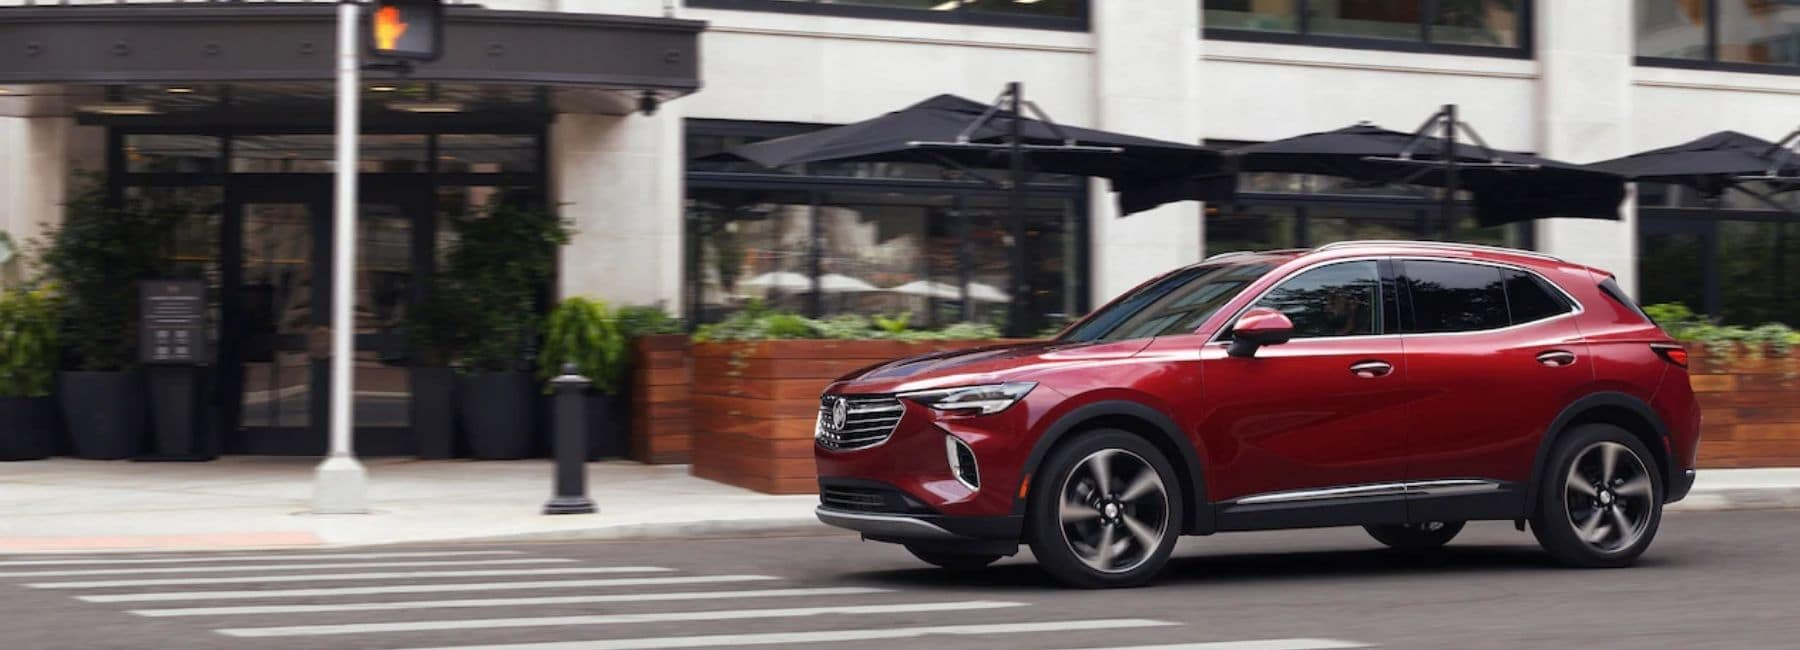 Red 2021 Buick Envision Driving Downtown